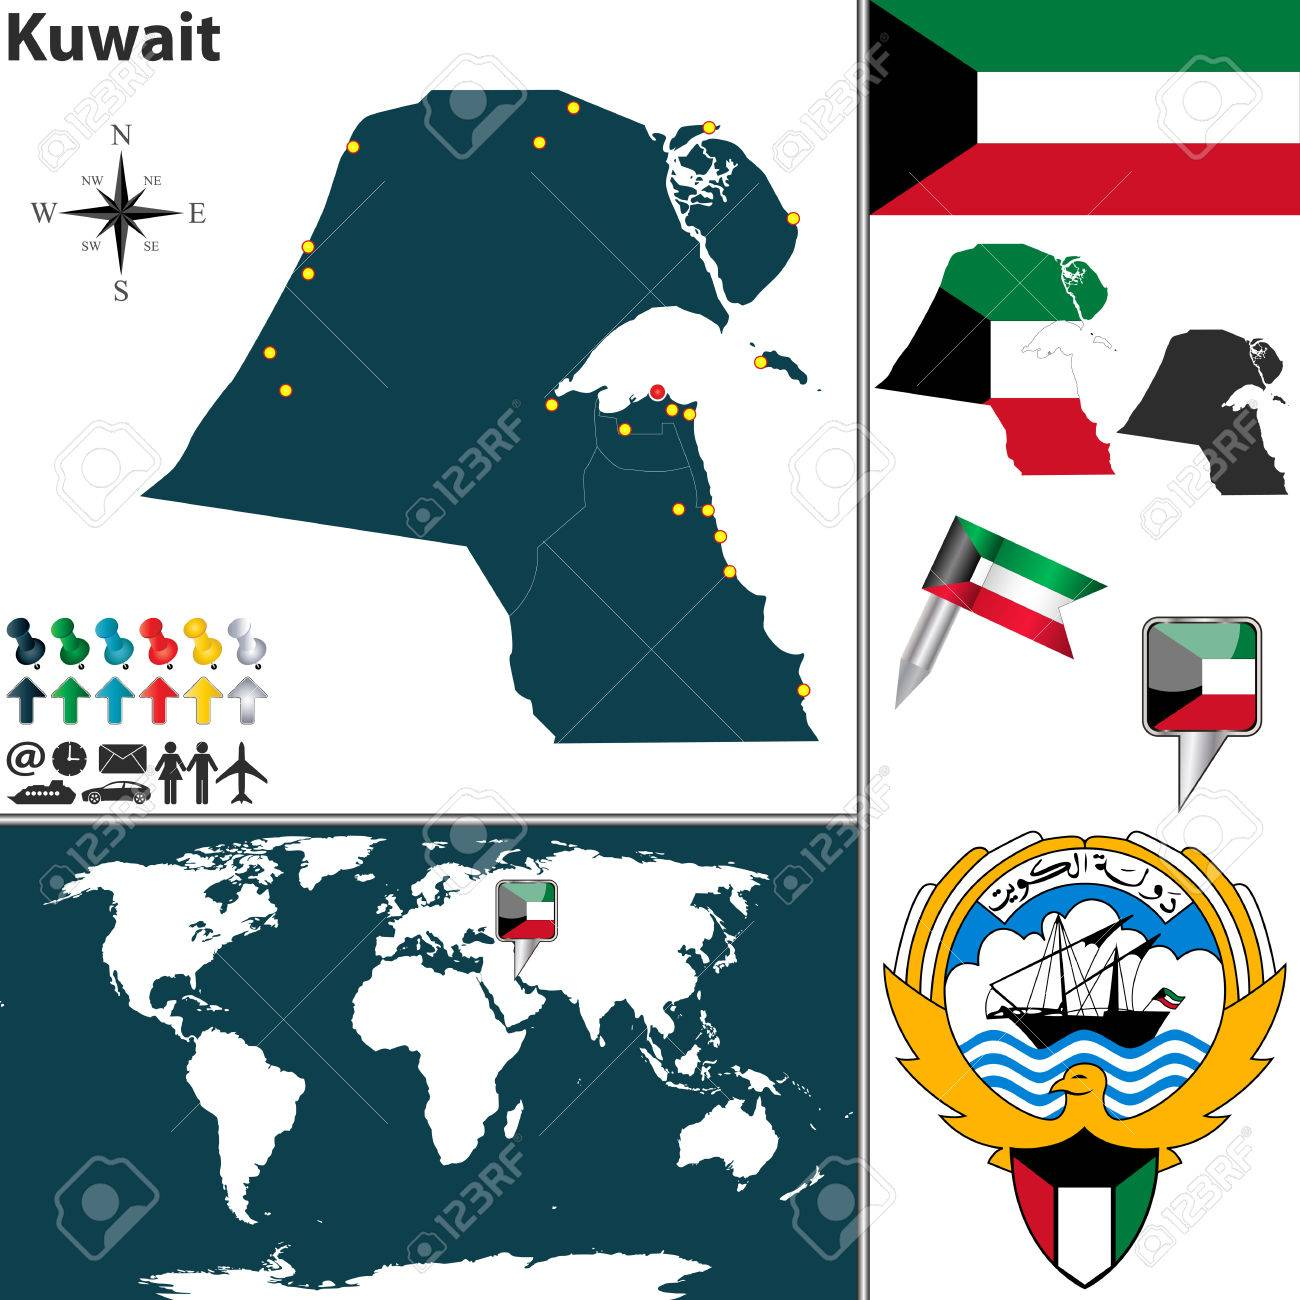 map of Kuwait with regions, coat of arms and location on world.. Kuwait On World Map on kuwait road map, kuwait on google, kuwait geography, kuwait tourism, kuwait on map of europe, kuwait on asia map, kuwait on africa, kuwait richest country, kuwait land use map, kuwait country map, kuwait on world atlas, al jaber kuwait air base map, jordan map, kuwait physical features, kuwait street map, kuwait time zone map, tel aviv world map, kuwait map google, kuwait on globe, kuwait landform map,